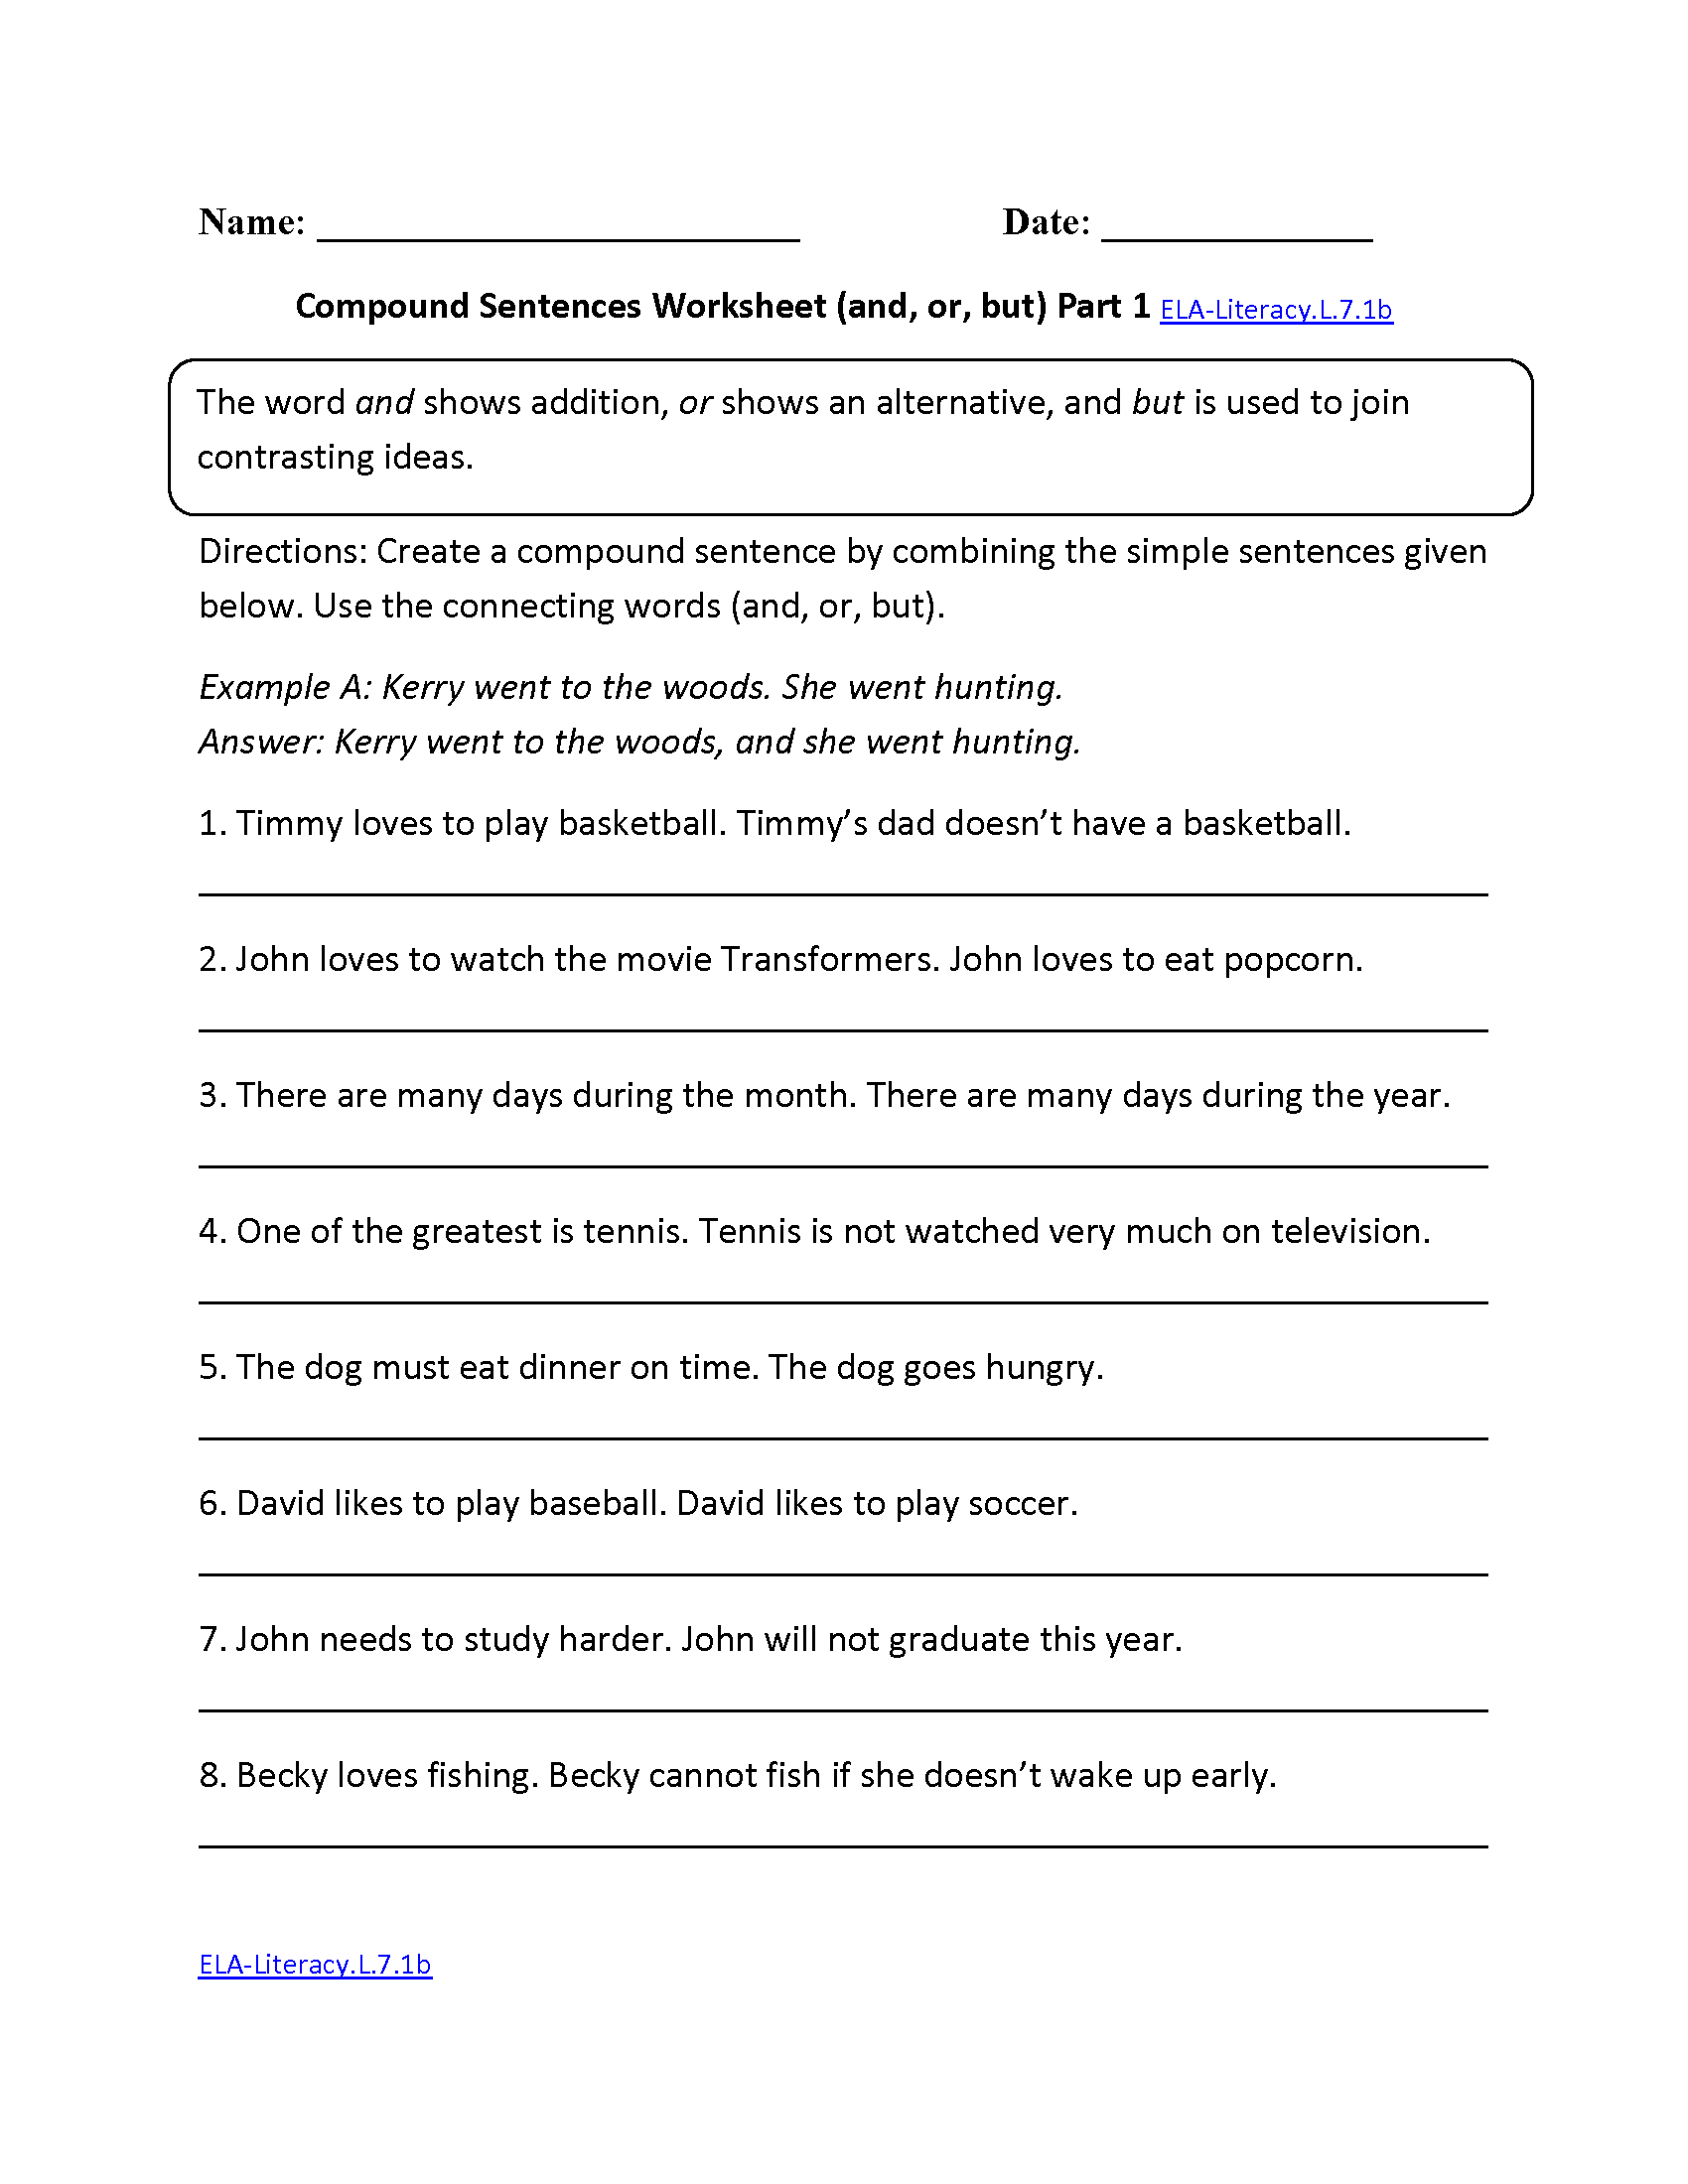 worksheet Capitalization Worksheets 4th Grade 7th grade common core language worksheets compound sentences worksheet ela literacy l 7 1b worksheet